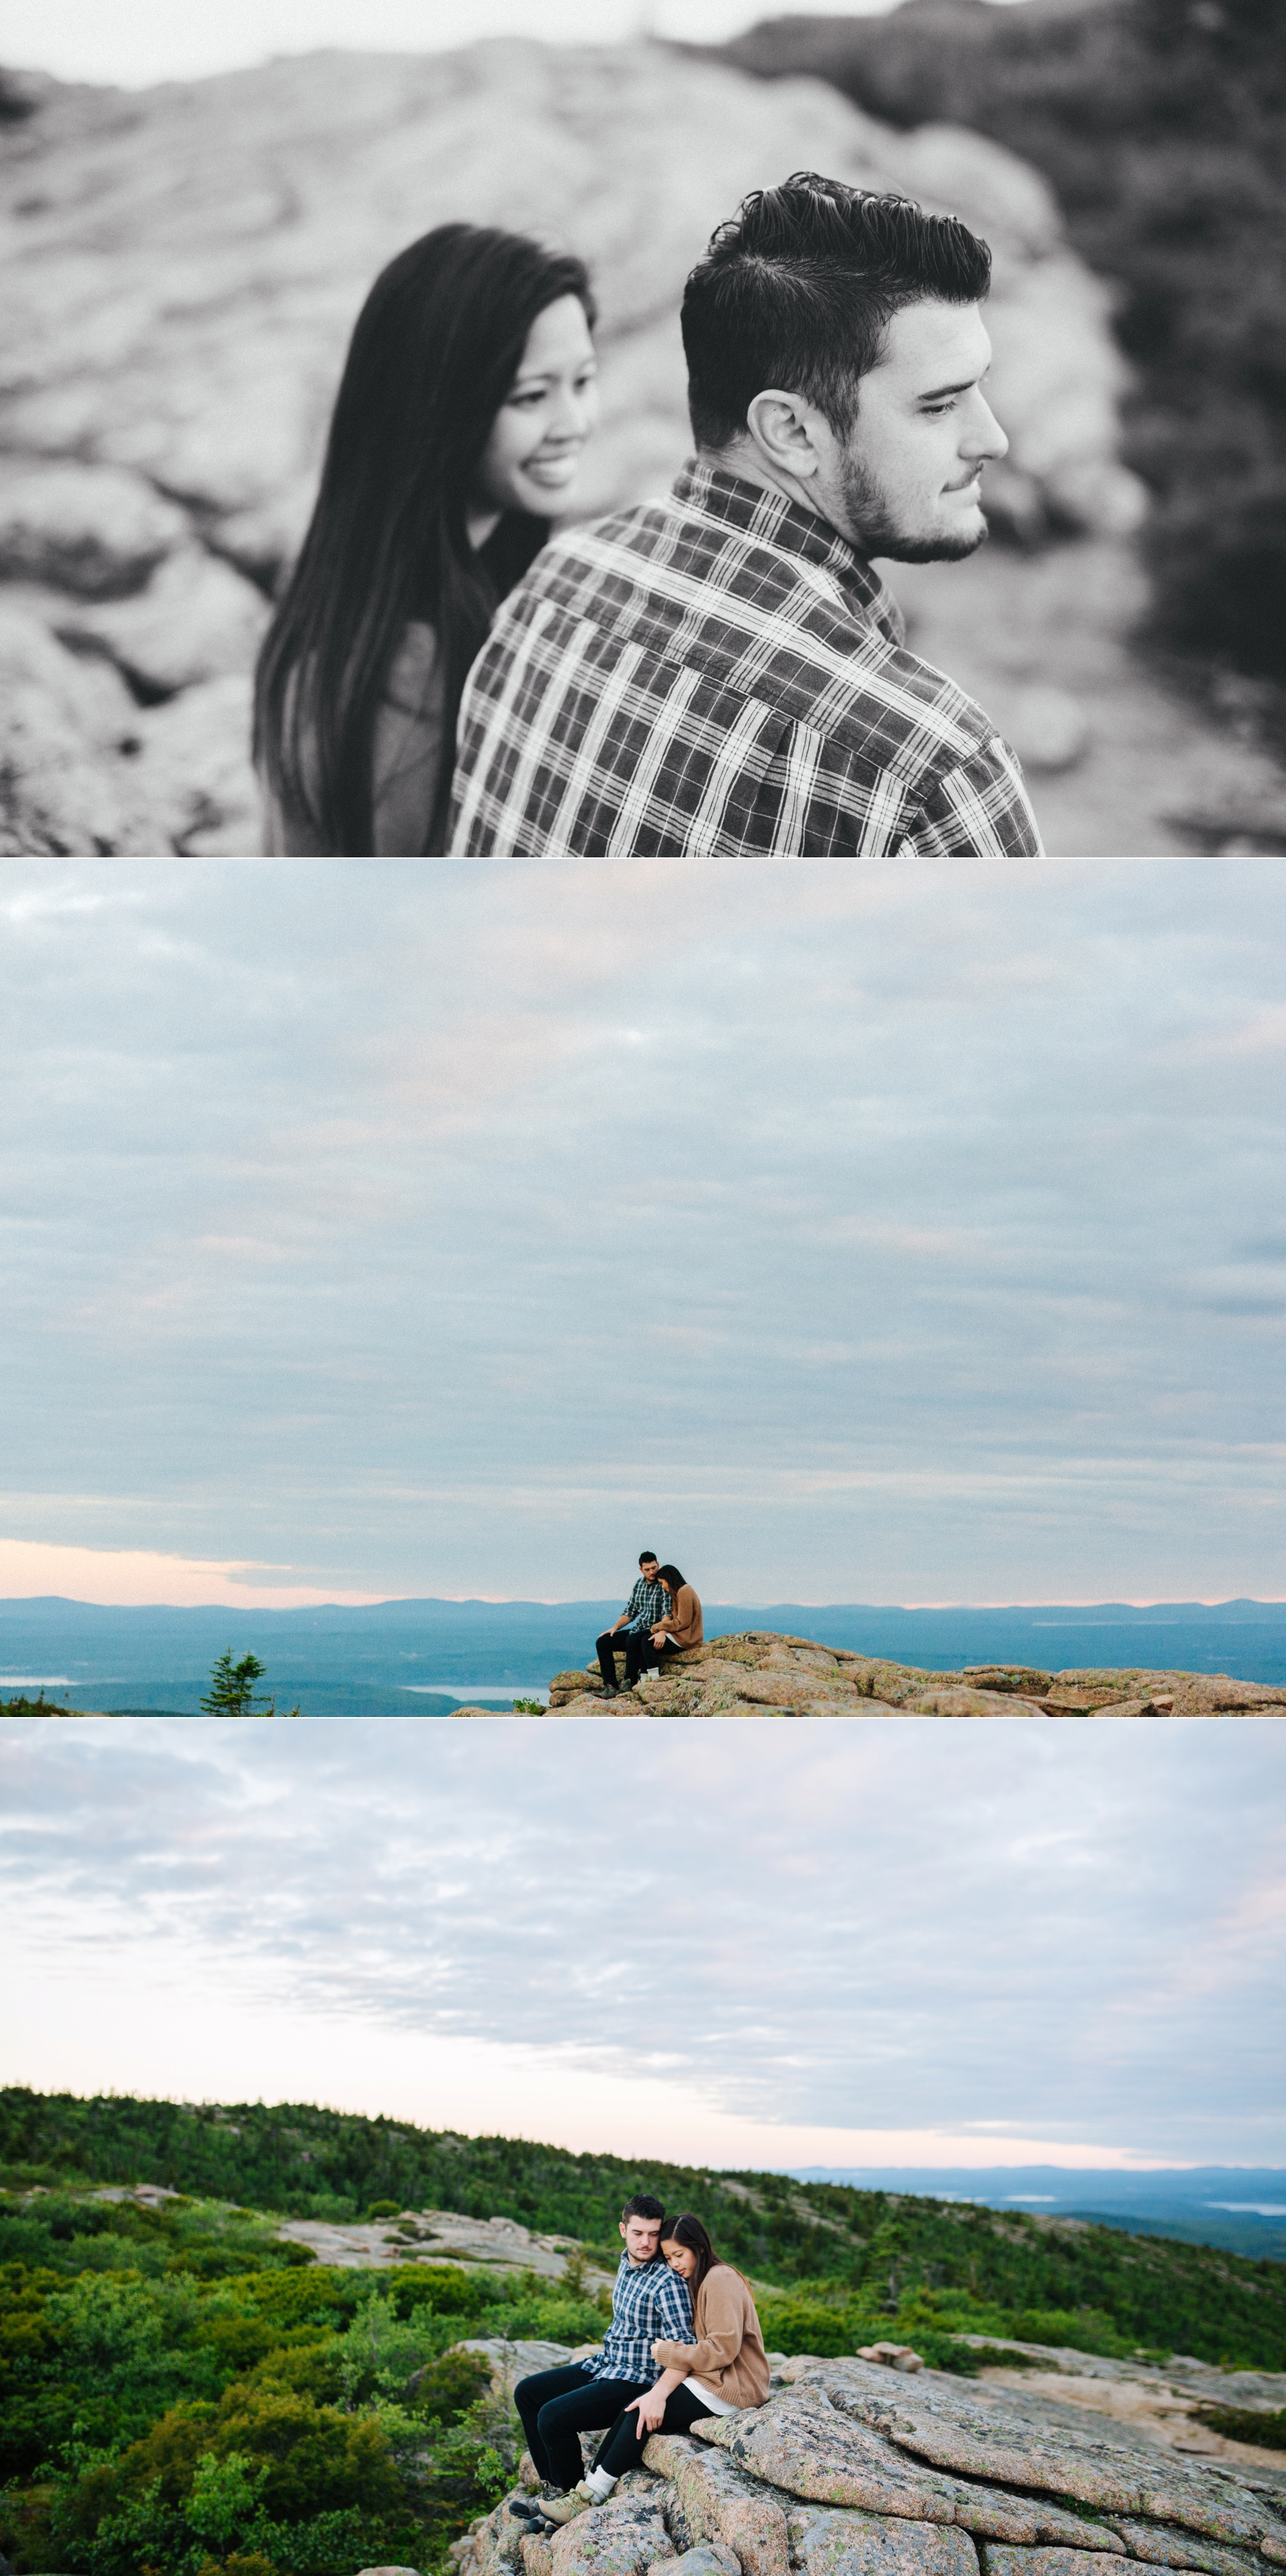 jake and jill acacdia national park engagement session cadillac mountain engagement session jordan pond engagement session maine engagement session jake and katie_0008